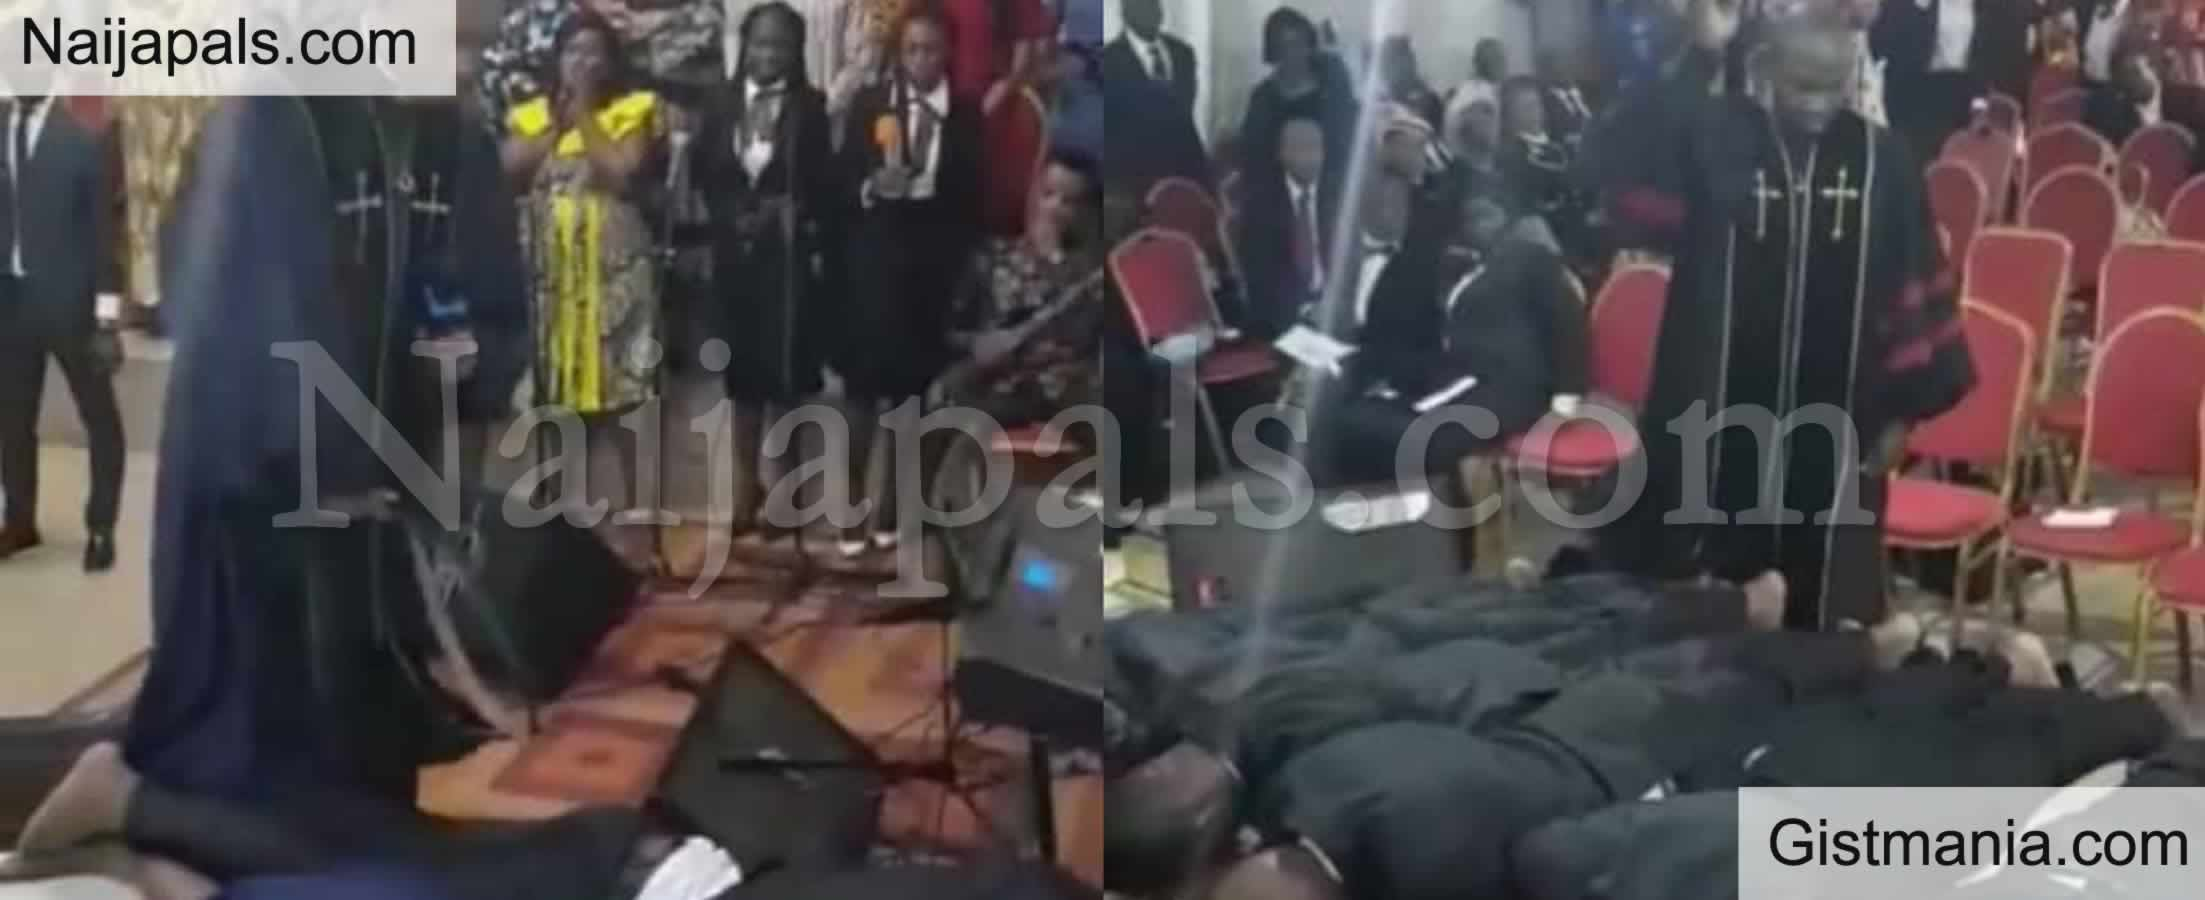 <img alt='.' class='lazyload' data-src='https://img.gistmania.com/emot/video.gif' /> <b>Watch Shocking Video Of Pastor Flogging His Own Church Members On Their Butt During Service</b>